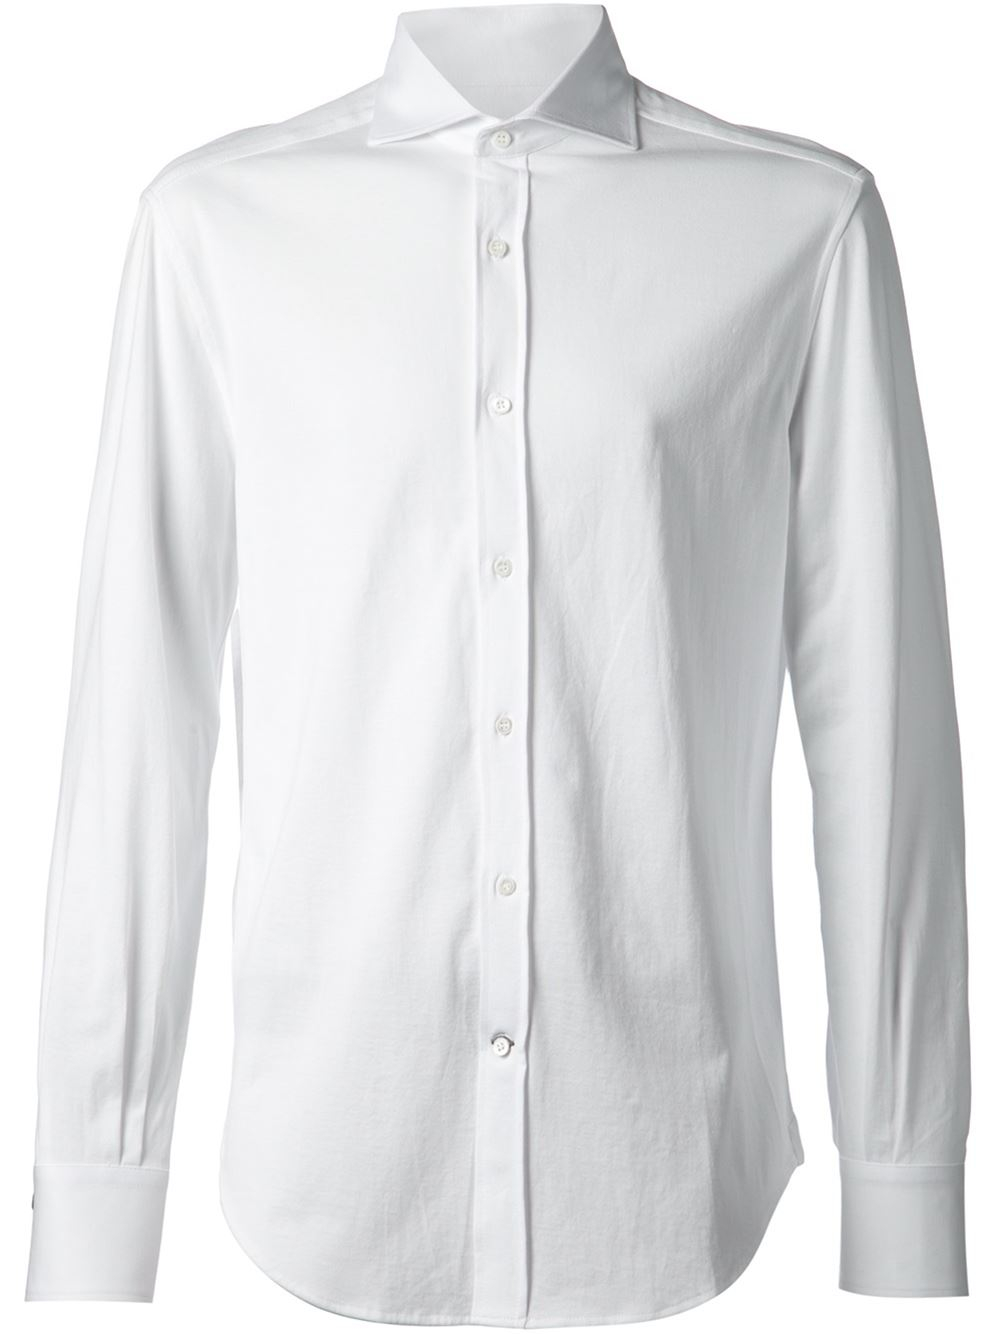 Brunello cucinell spread collar shirt in white for men lyst for Men s spread collar shirts